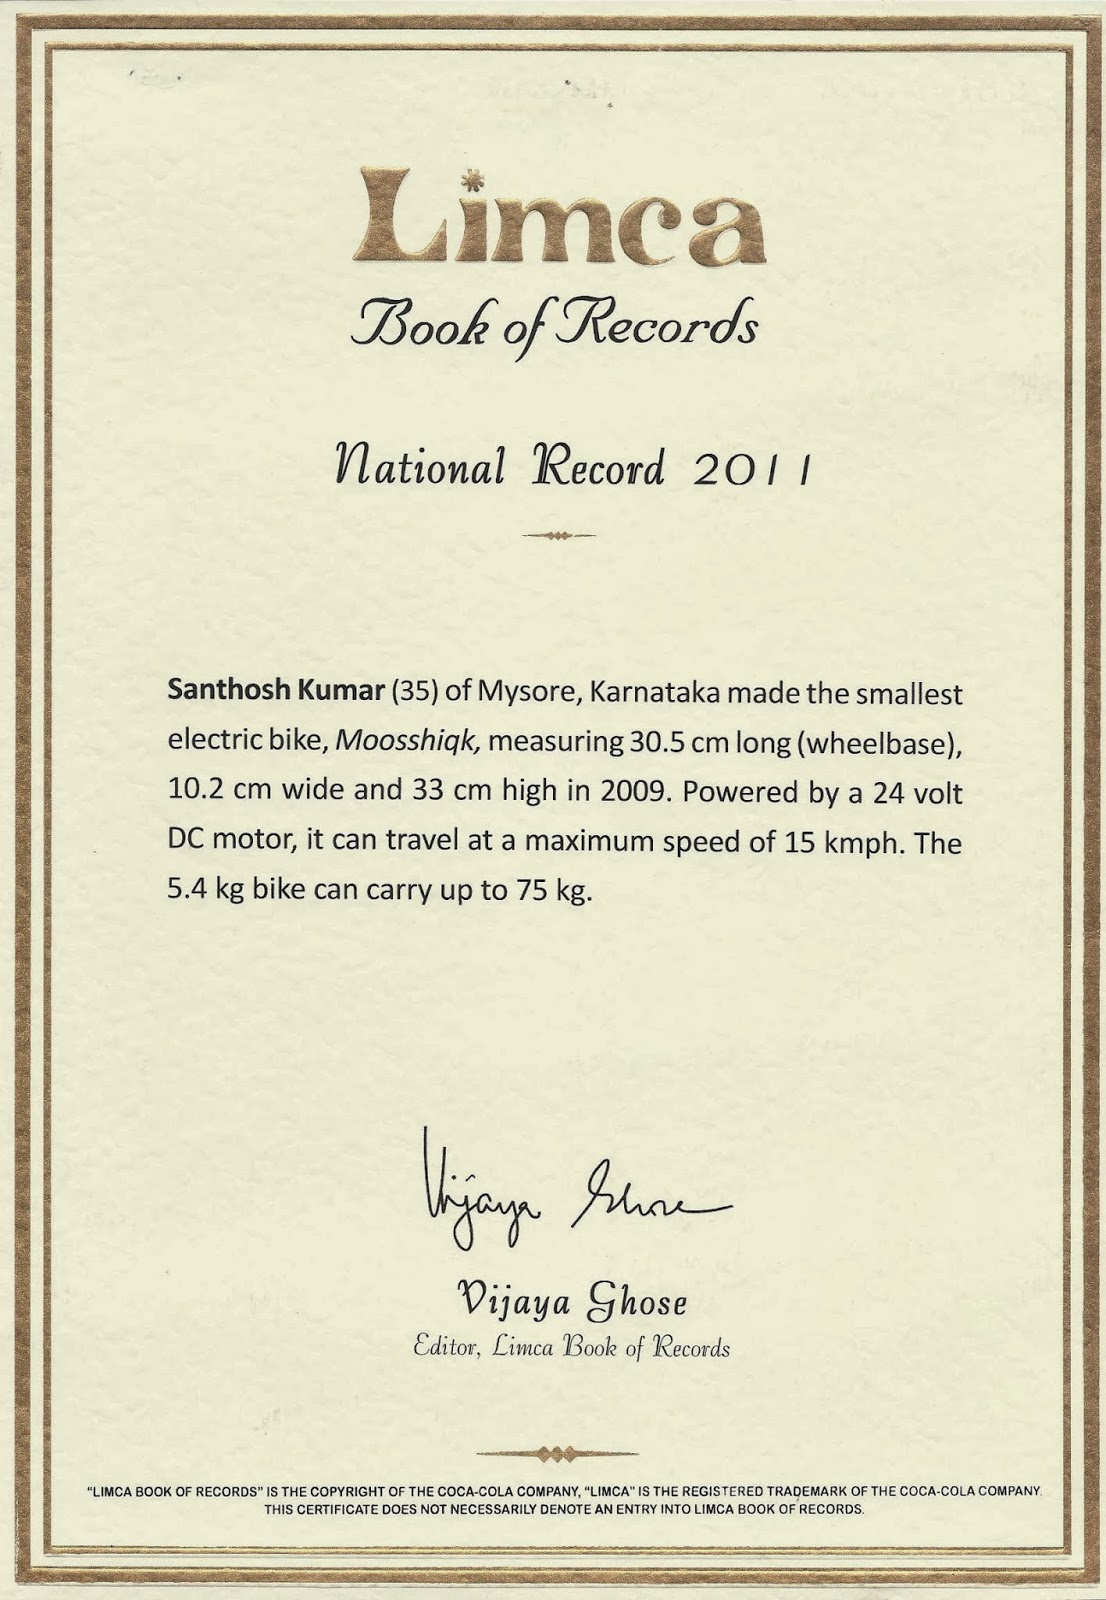 Moosshiqk on Limca Book of Records